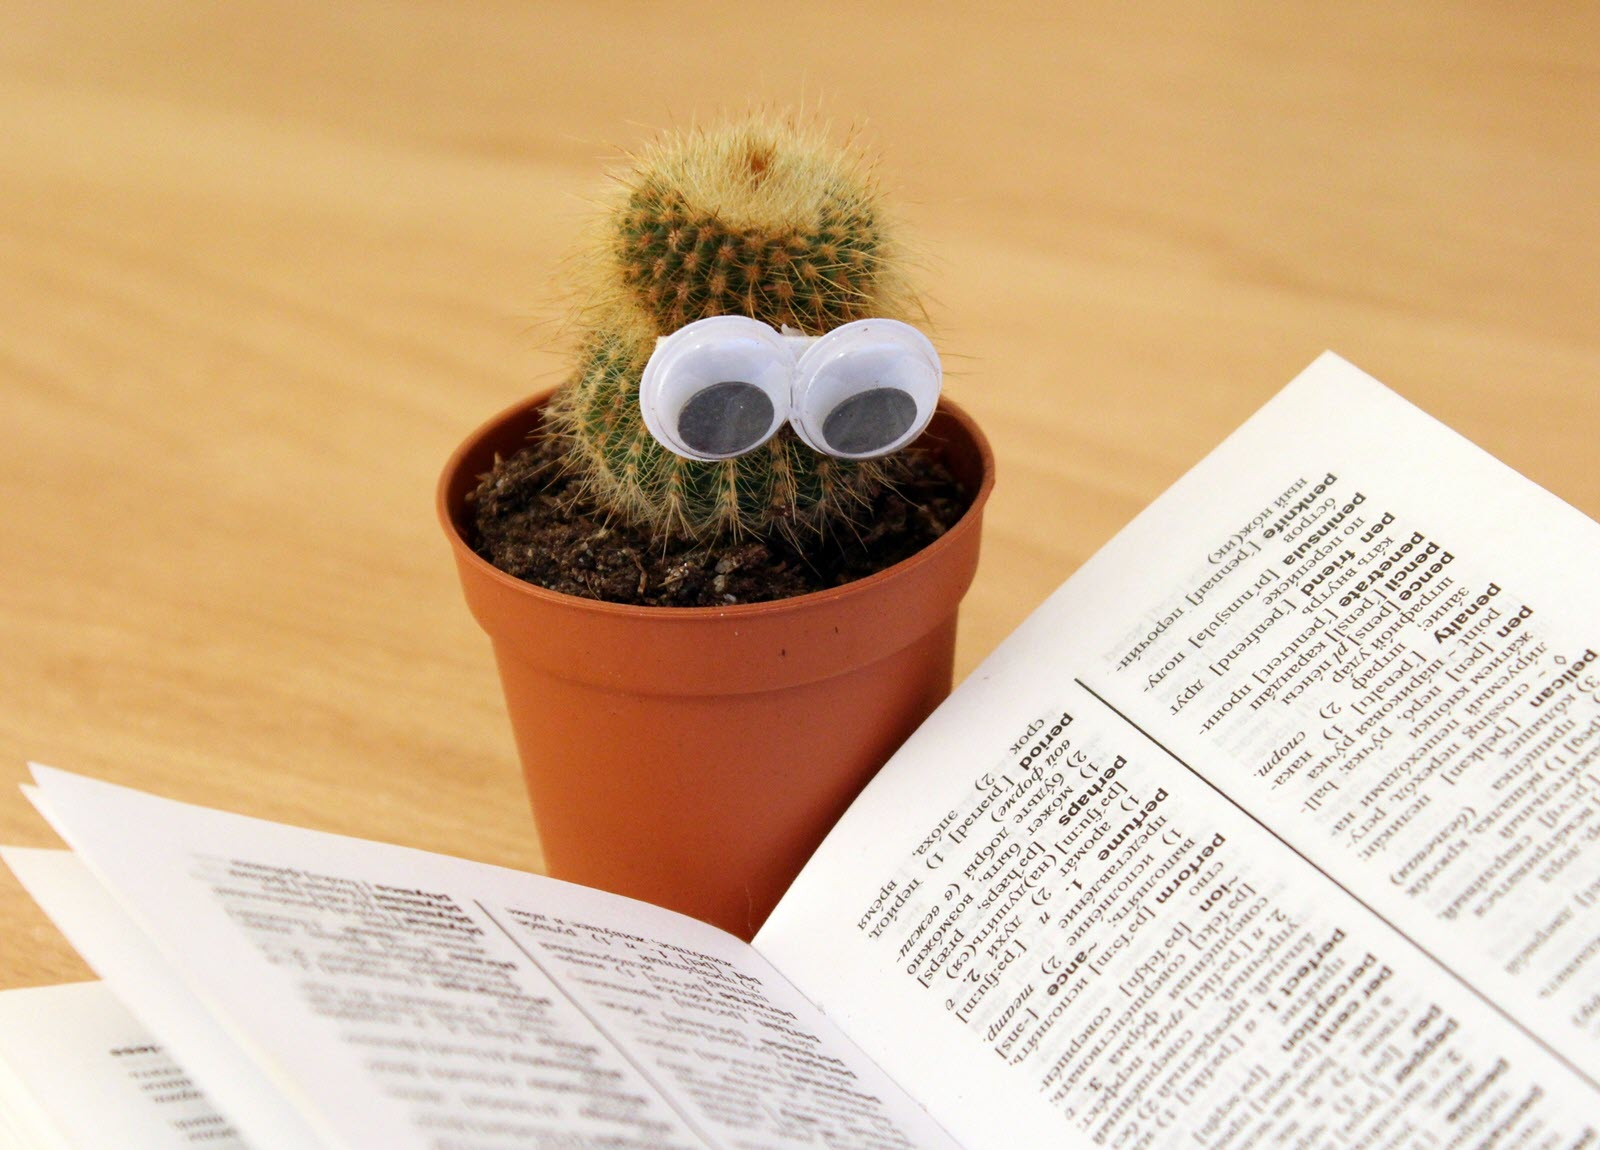 Cactus with Googly Eyes Reading a Book